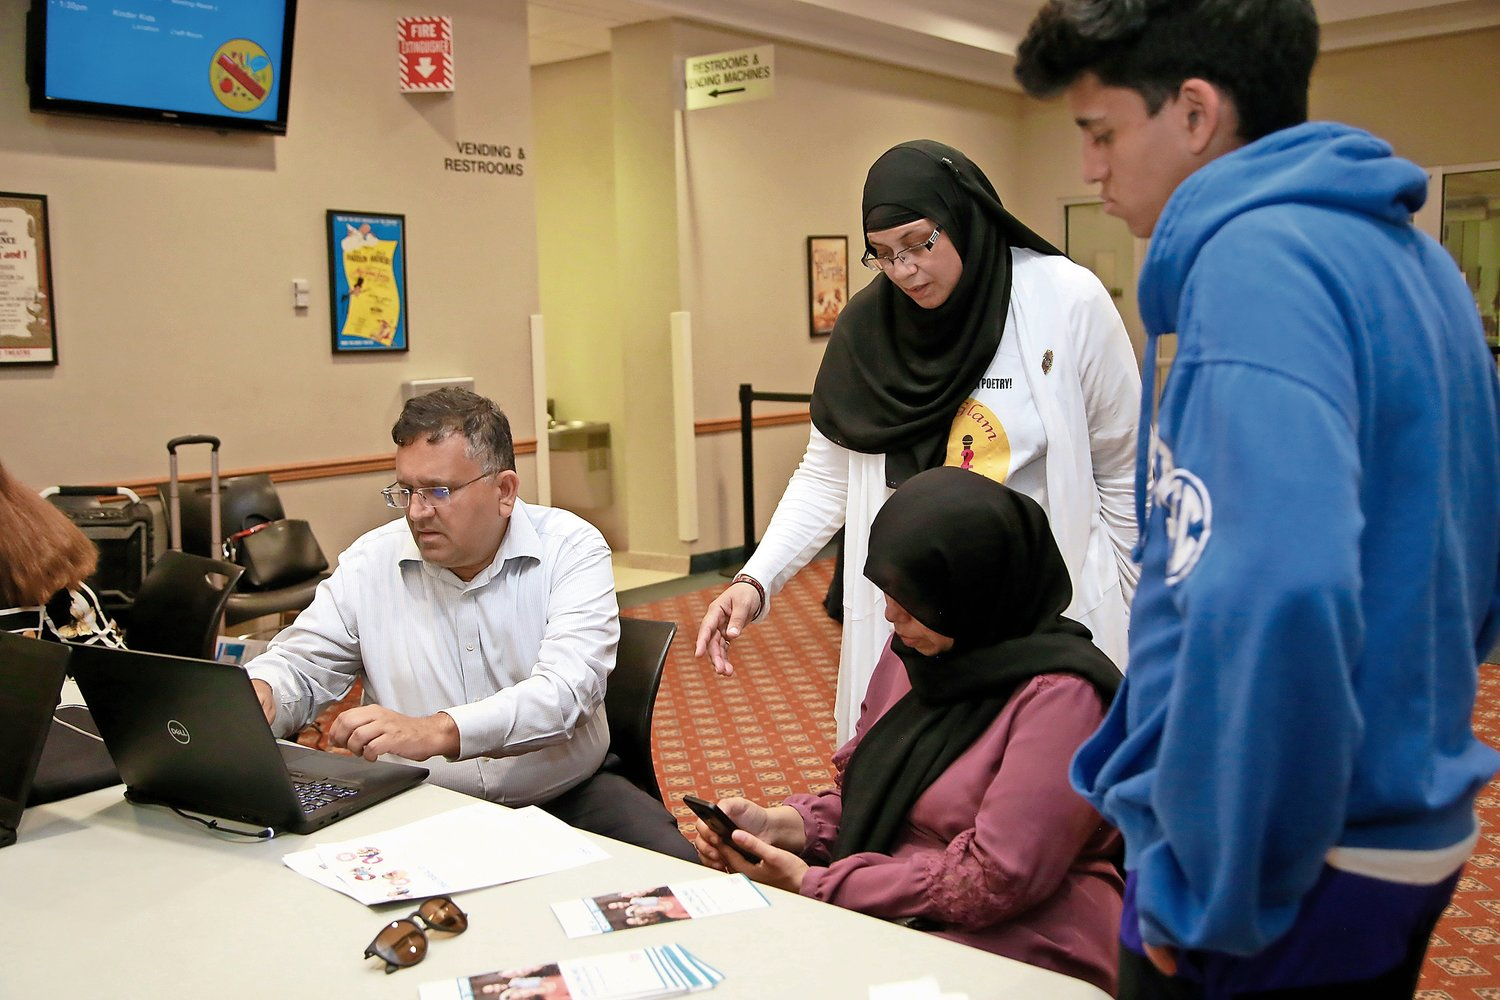 Chaplain Jamillah Mozawalla, right, helped Murtaza and Rumayla Bhalloo fill out their application.